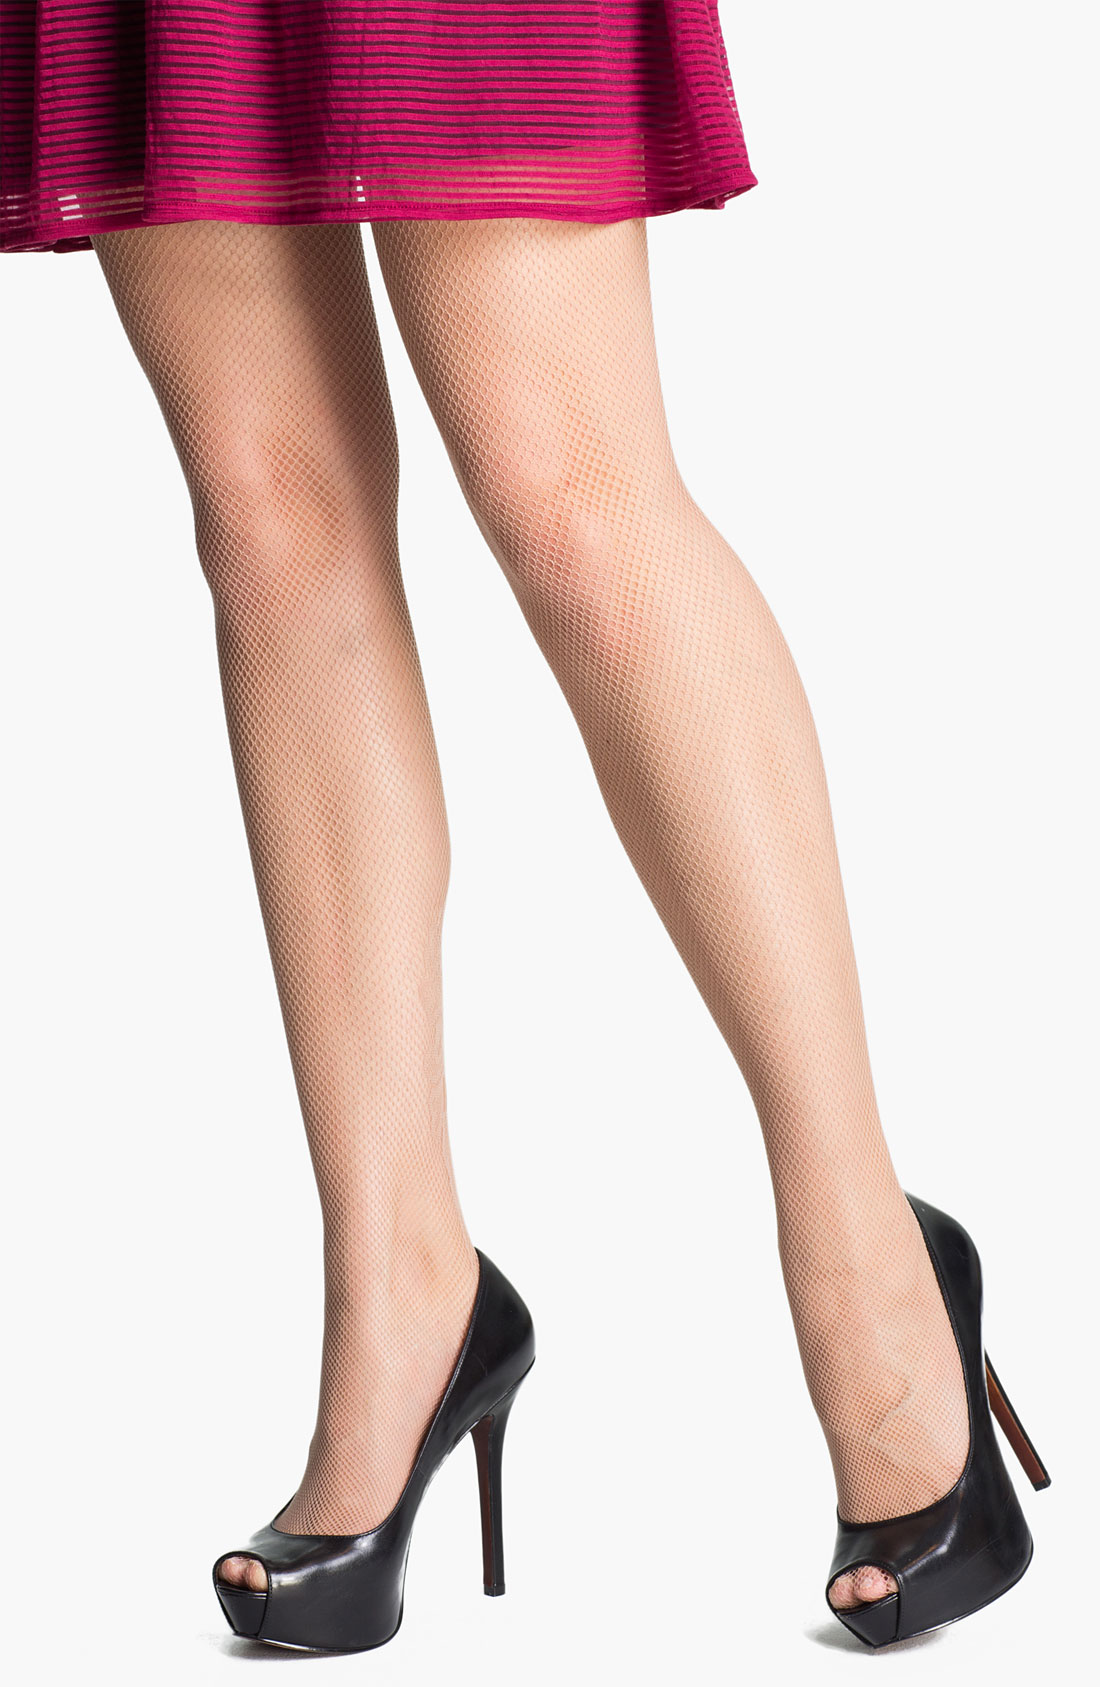 Pantyhose with back seam